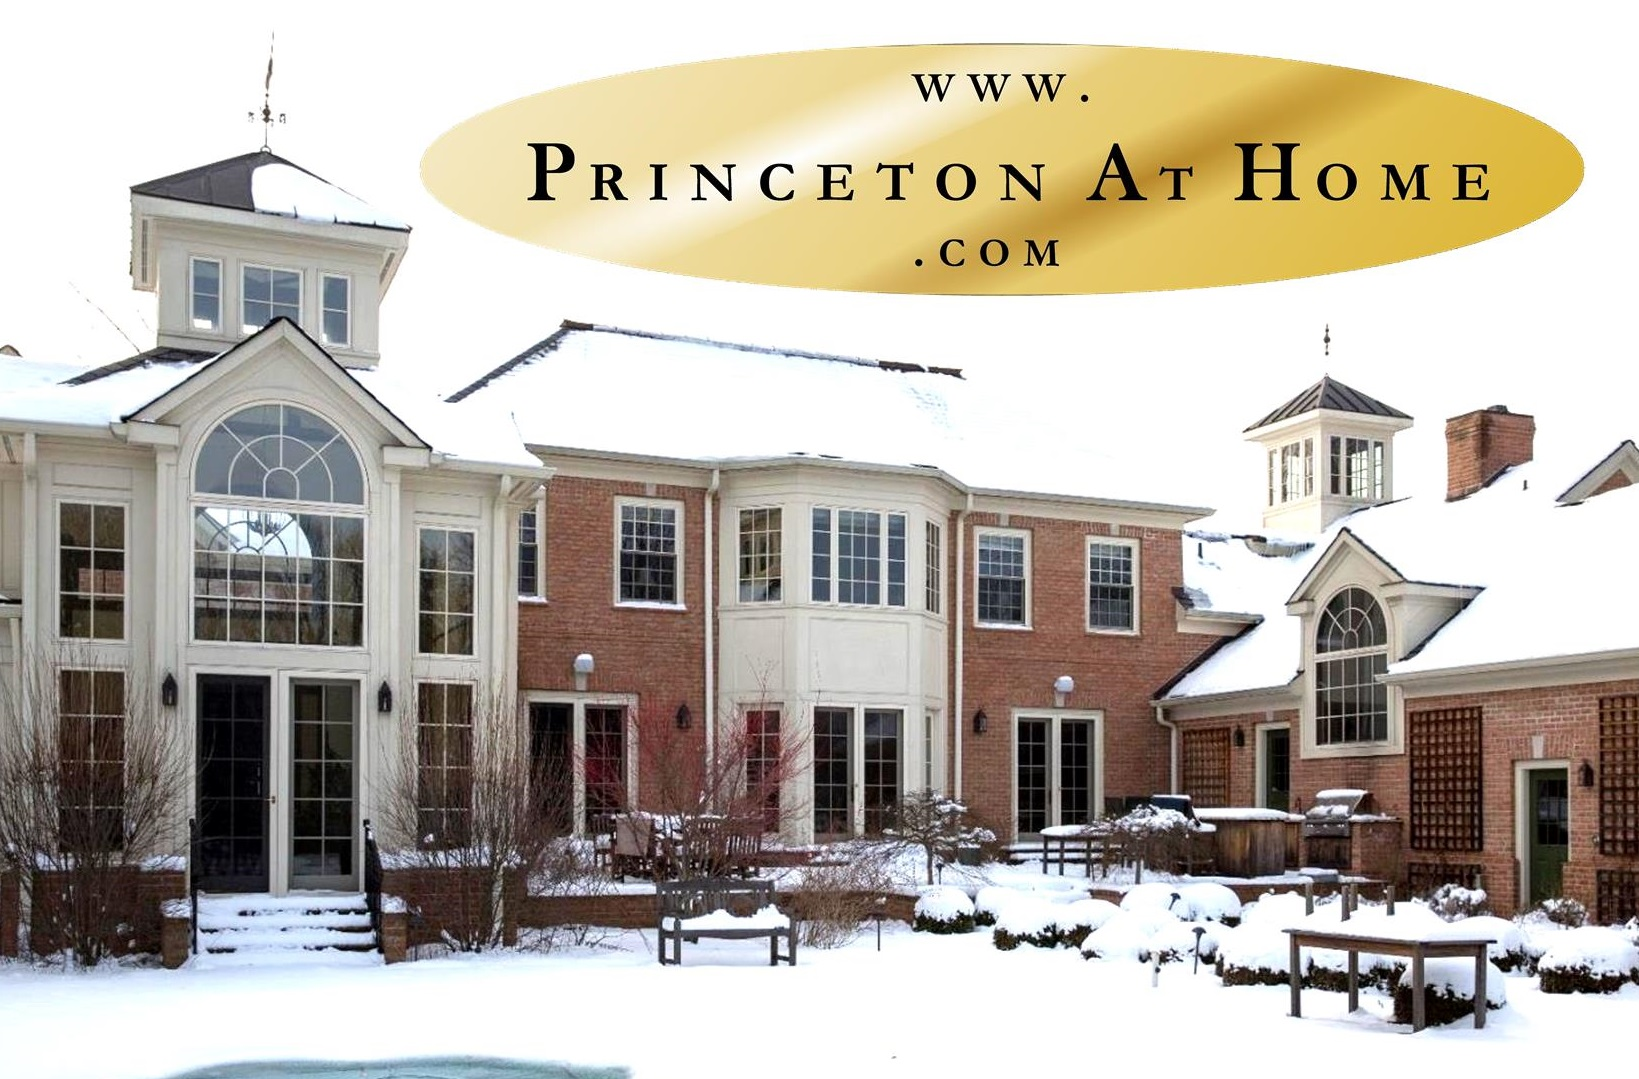 Princeton At Home, www.PrincetonAtHome.com, Steve Walny, Homes of Princeton